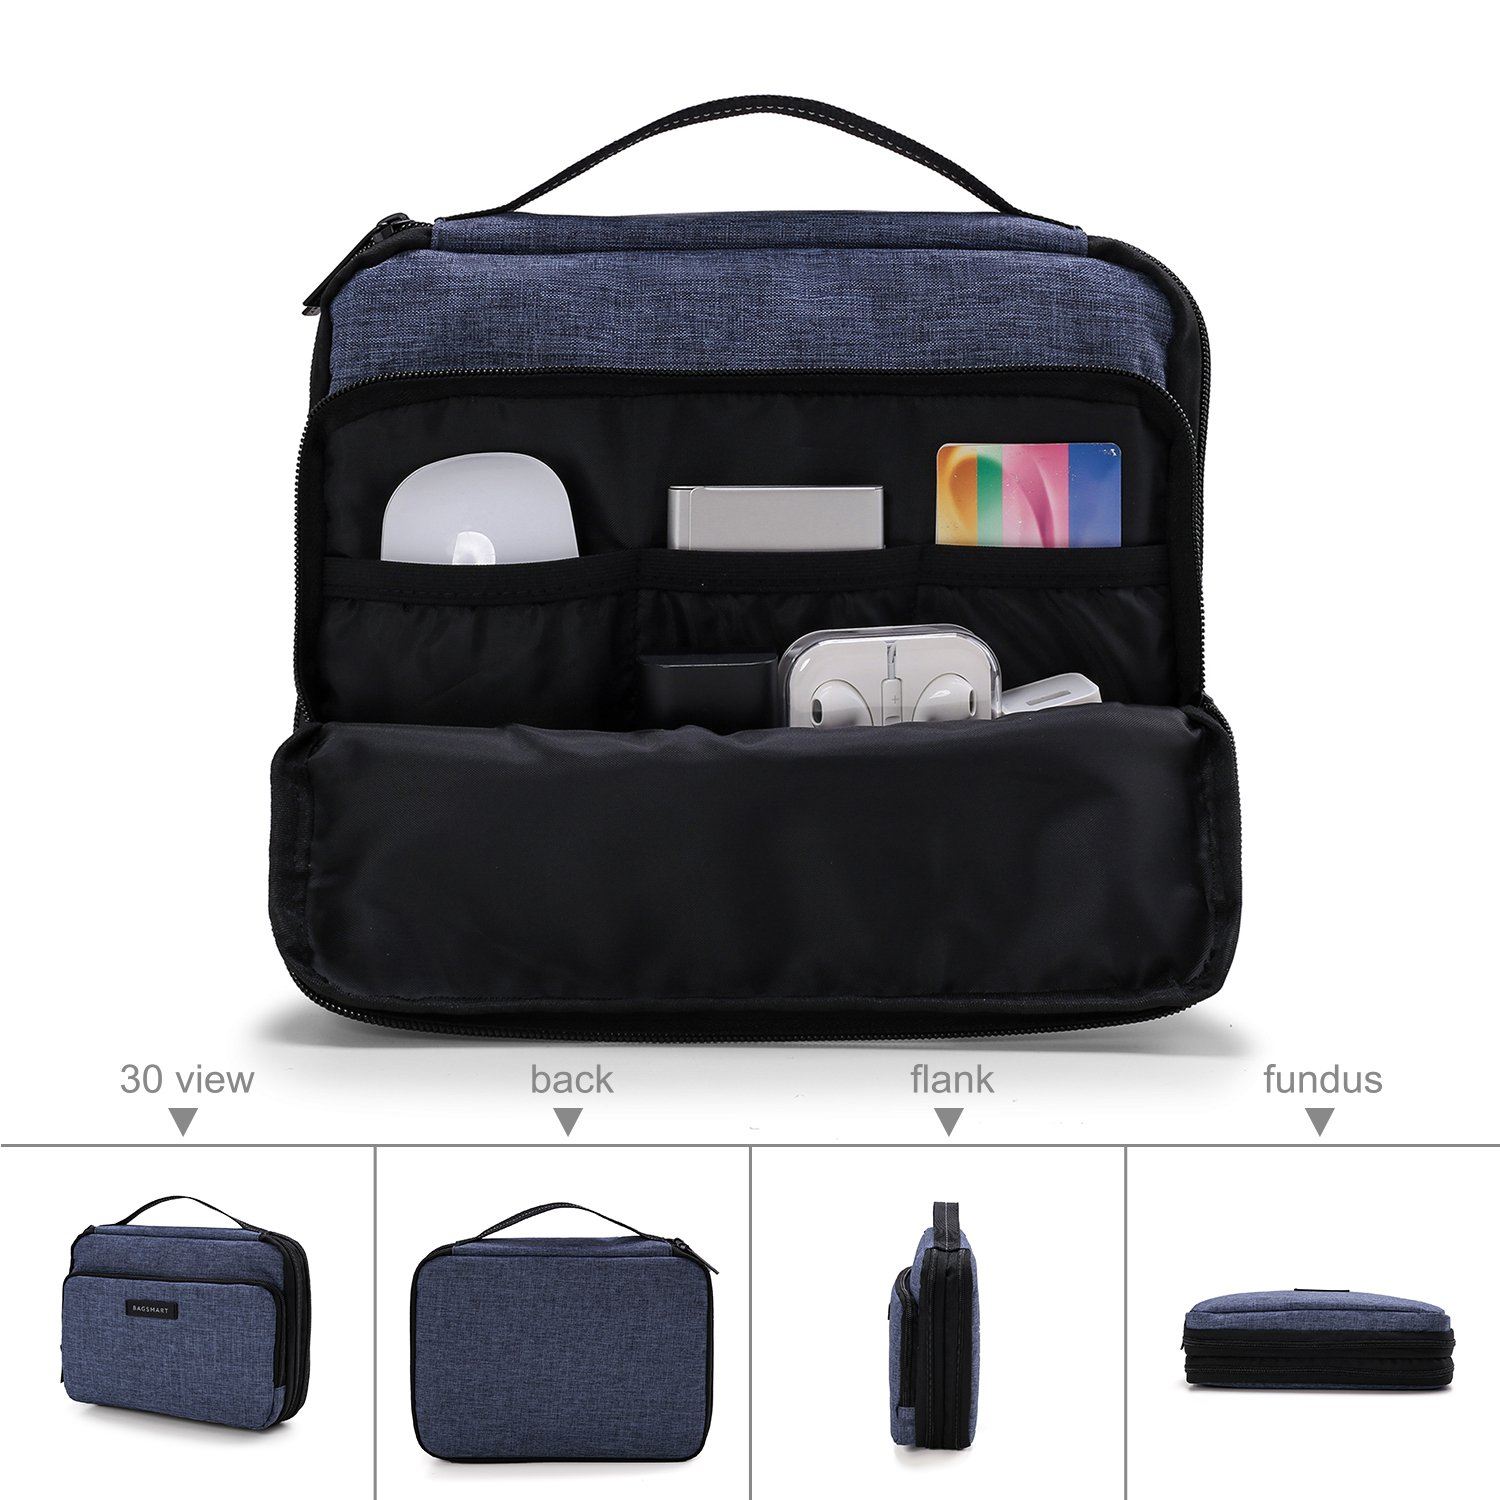 BAGSMART 3-layer Travel Electronics Cable Organizer Bag for 9.7'' iPad, Hard Drives, Cables, Charger, Kindle, Blue by BAGSMART (Image #4)